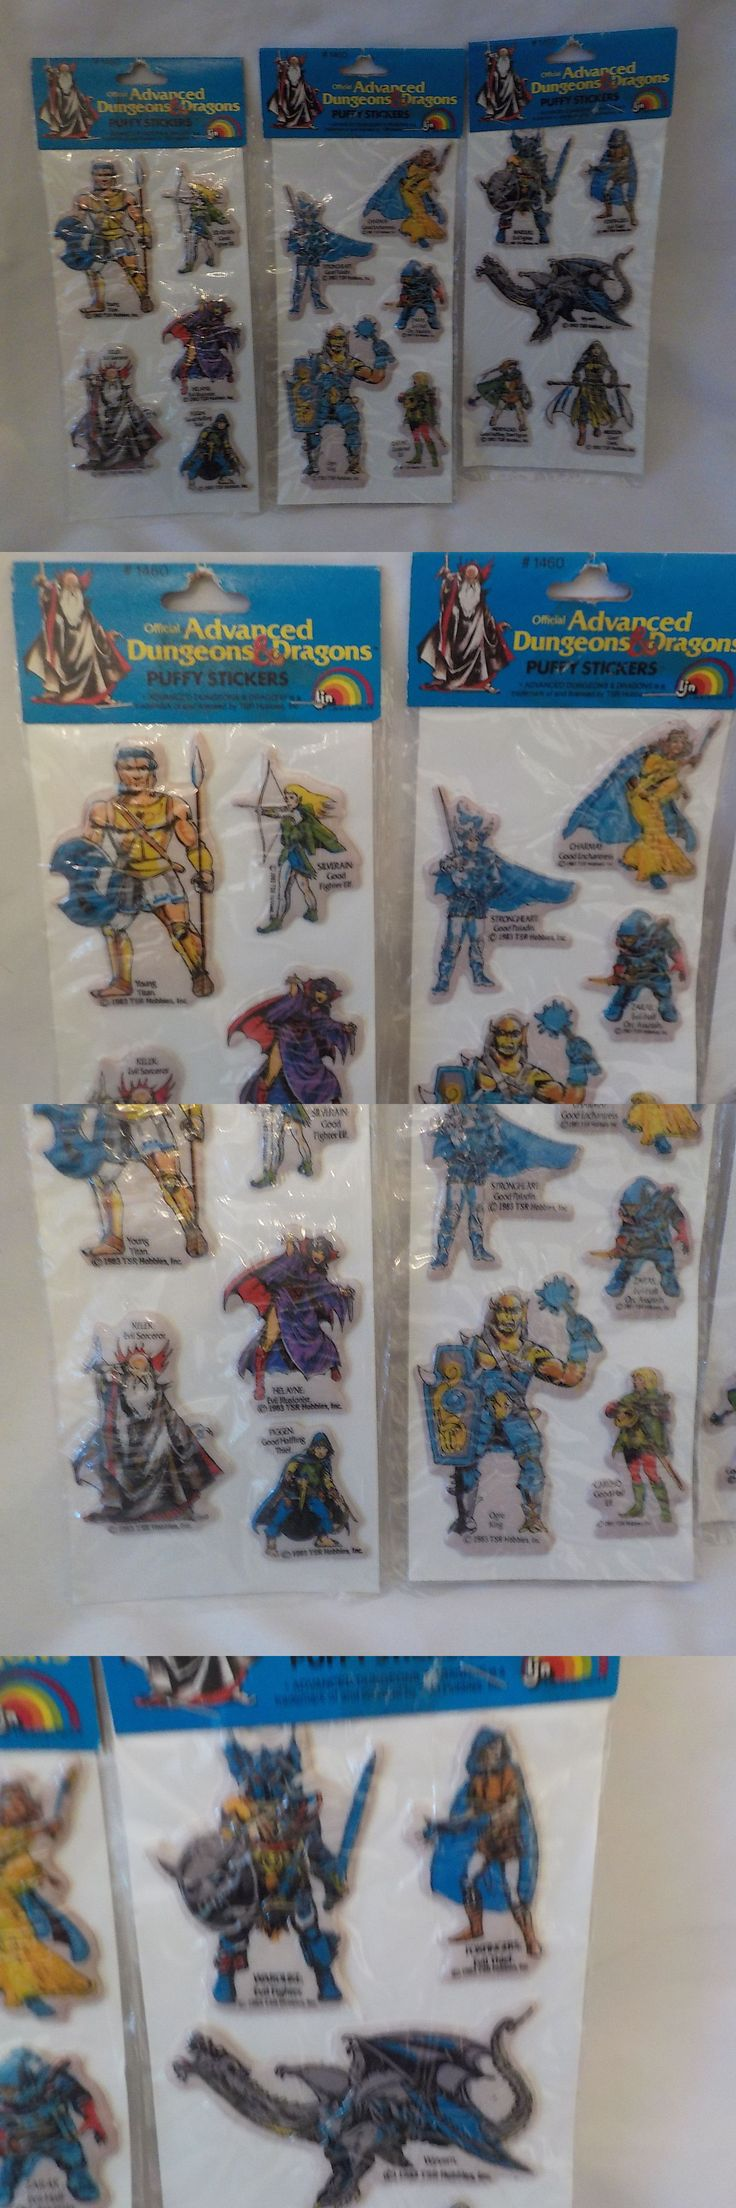 Other Dungeons and Dragons 2545: Rare Tsr Advanced Dungeons And Dragons 3 (5) Packs Puffy Stickers 1460 Sealed 1983 -> BUY IT NOW ONLY: $49.99 on eBay!